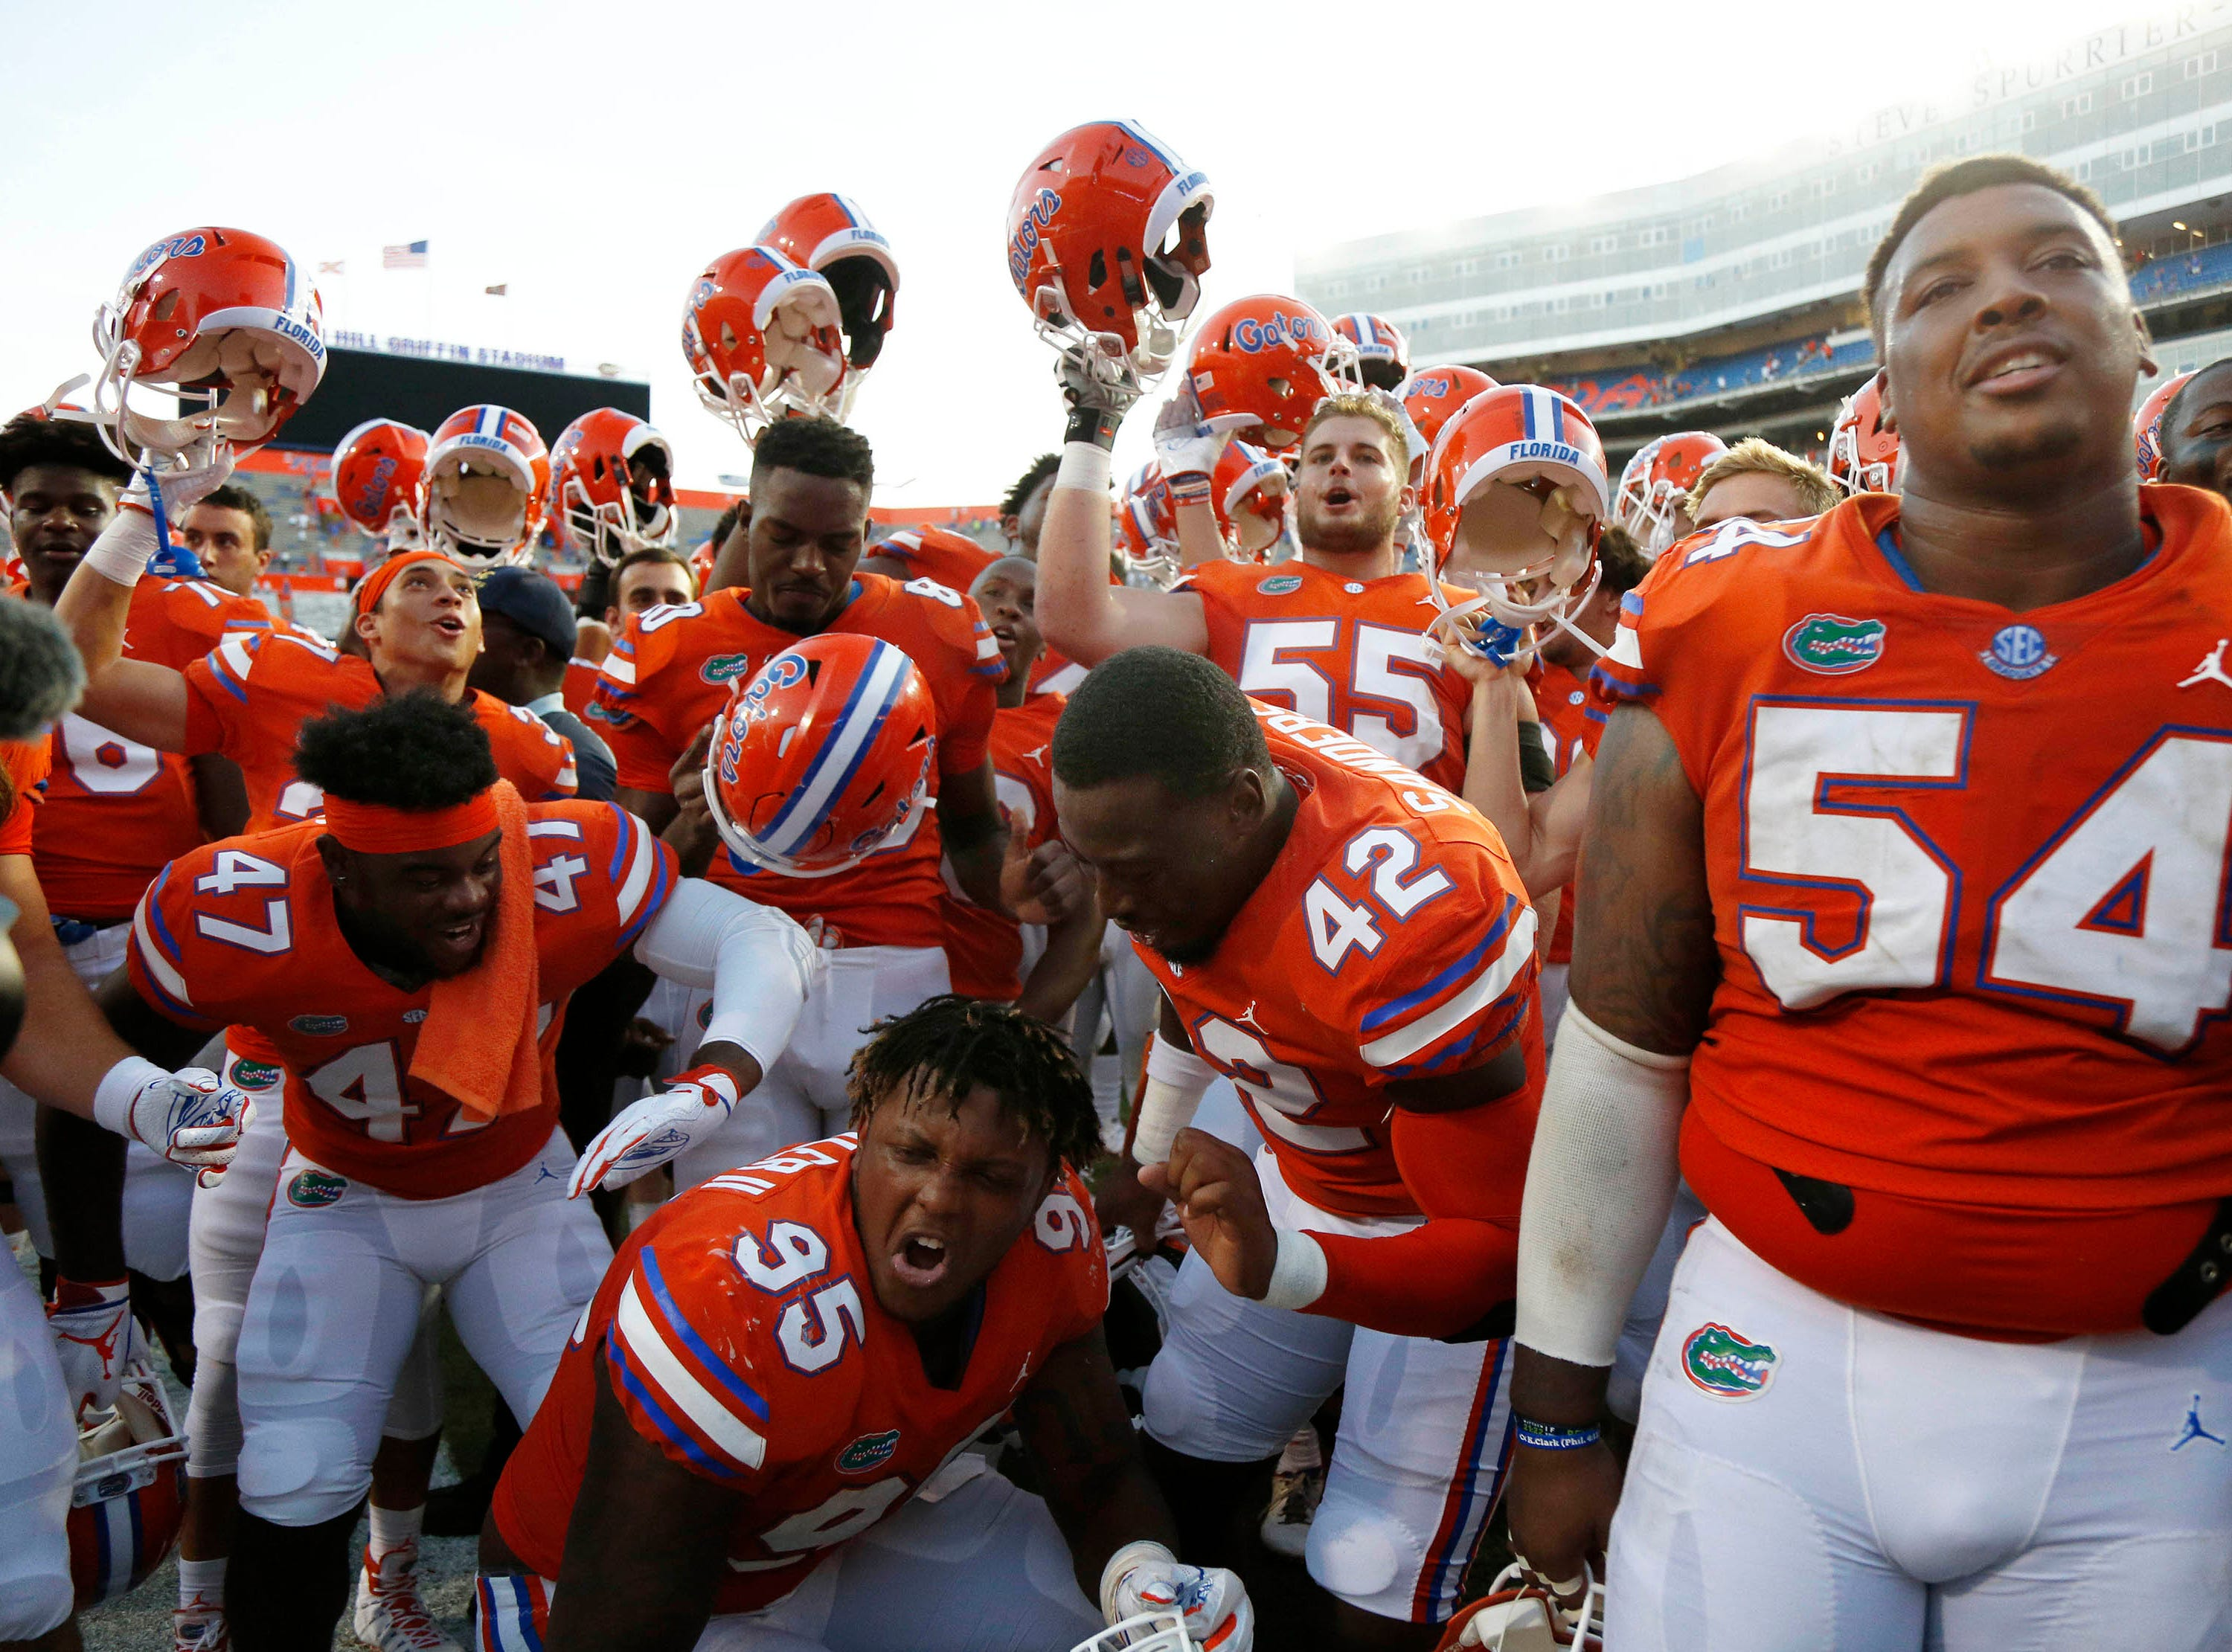 Sep 15, 2018; Gainesville, FL, USA; Florida Gators defensive lineman Adam Shuler II (95), linebacker Umstead Sanders (42), tight end C'yontai Lewis (80) and teammates celebrate as they beat the Colorado State Rams during the second half at Ben Hill Griffin Stadium. Mandatory Credit: Kim Klement-USA TODAY Sports